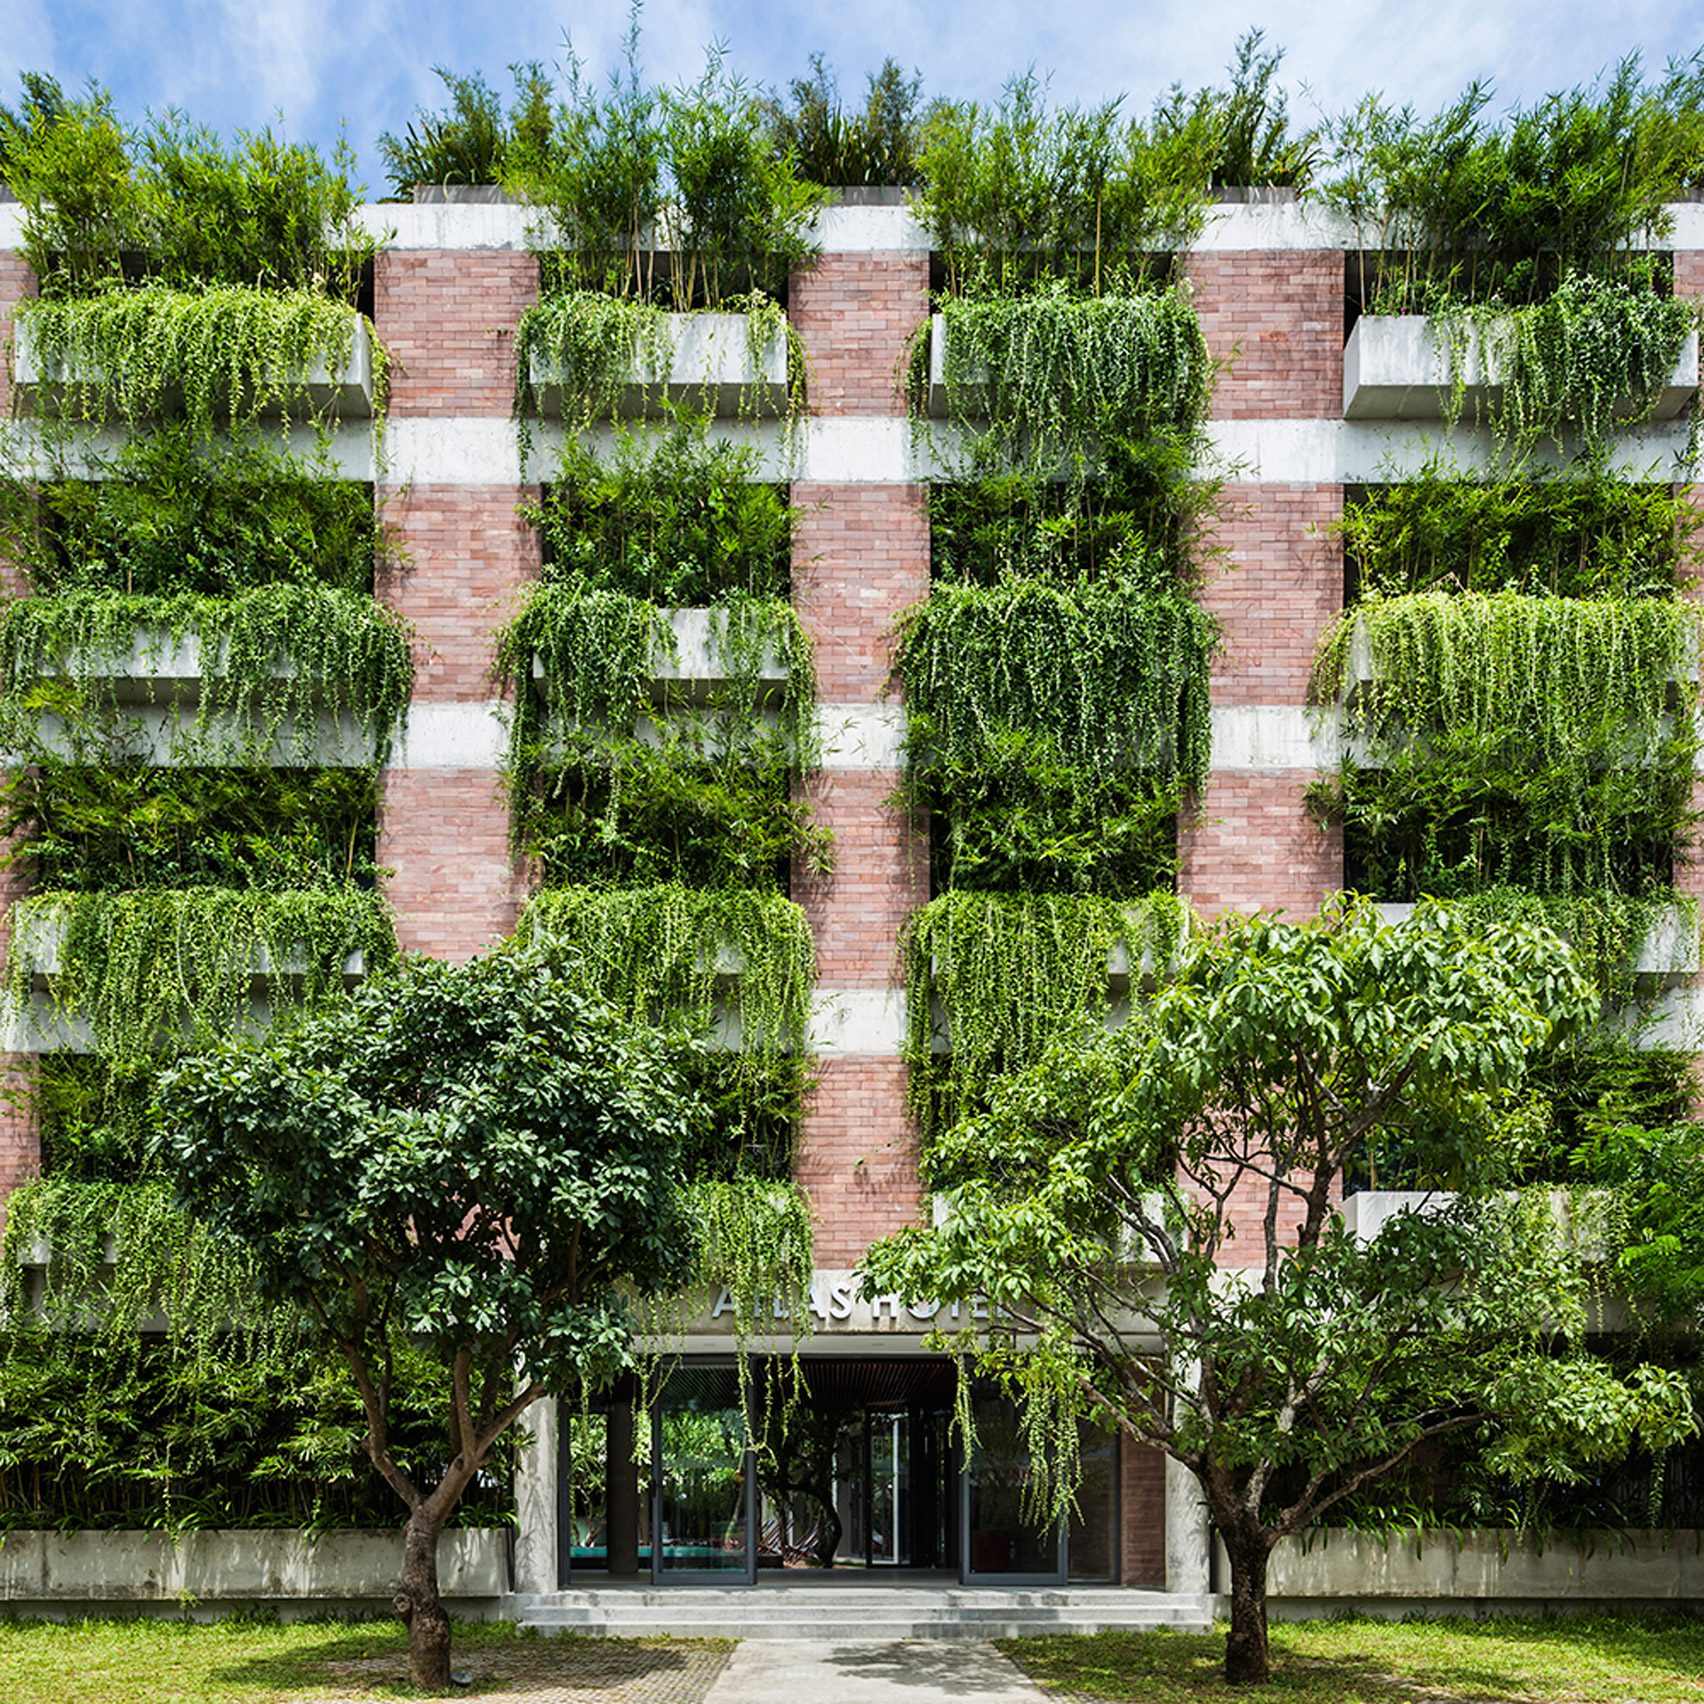 Atlas Hotel Hoi An, Hoi An, Vietnam, by Vo Trong Nghia Architects